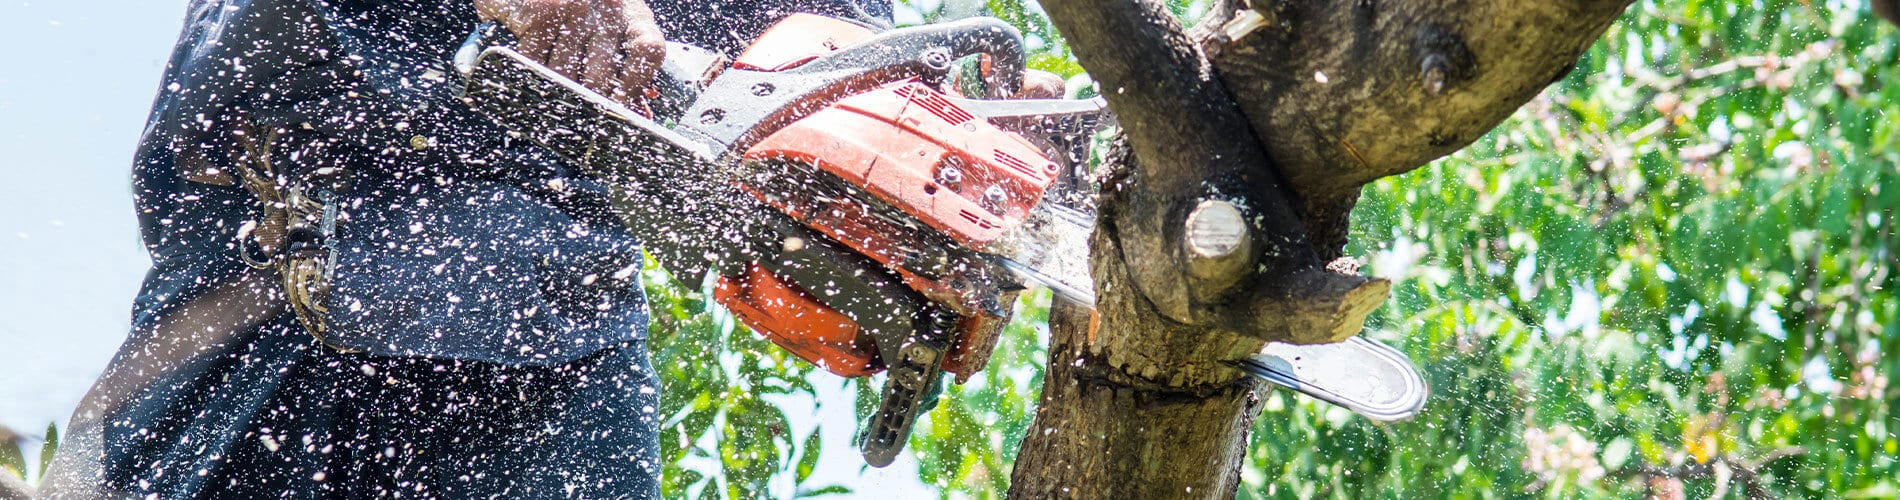 tree removal services near williamson county illlinois